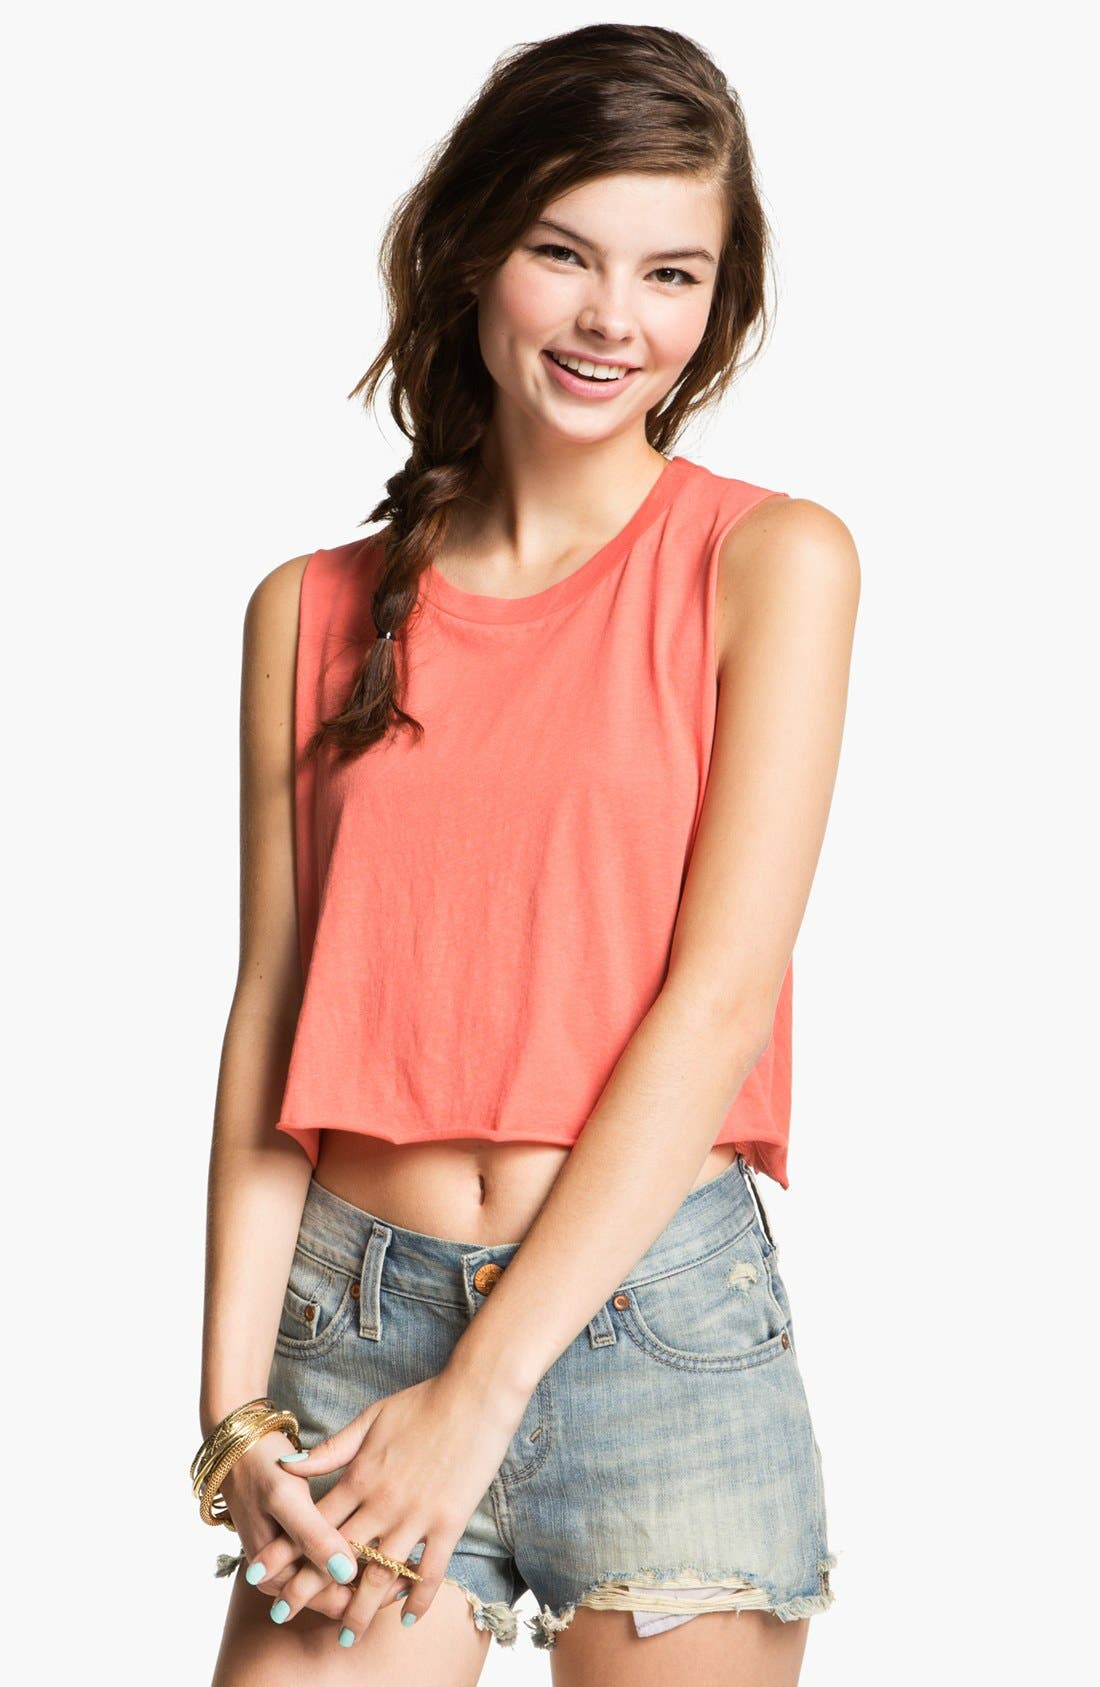 Alternate Image 1 Selected - Project Social T Shredded Crop Muscle Tee (Juniors)